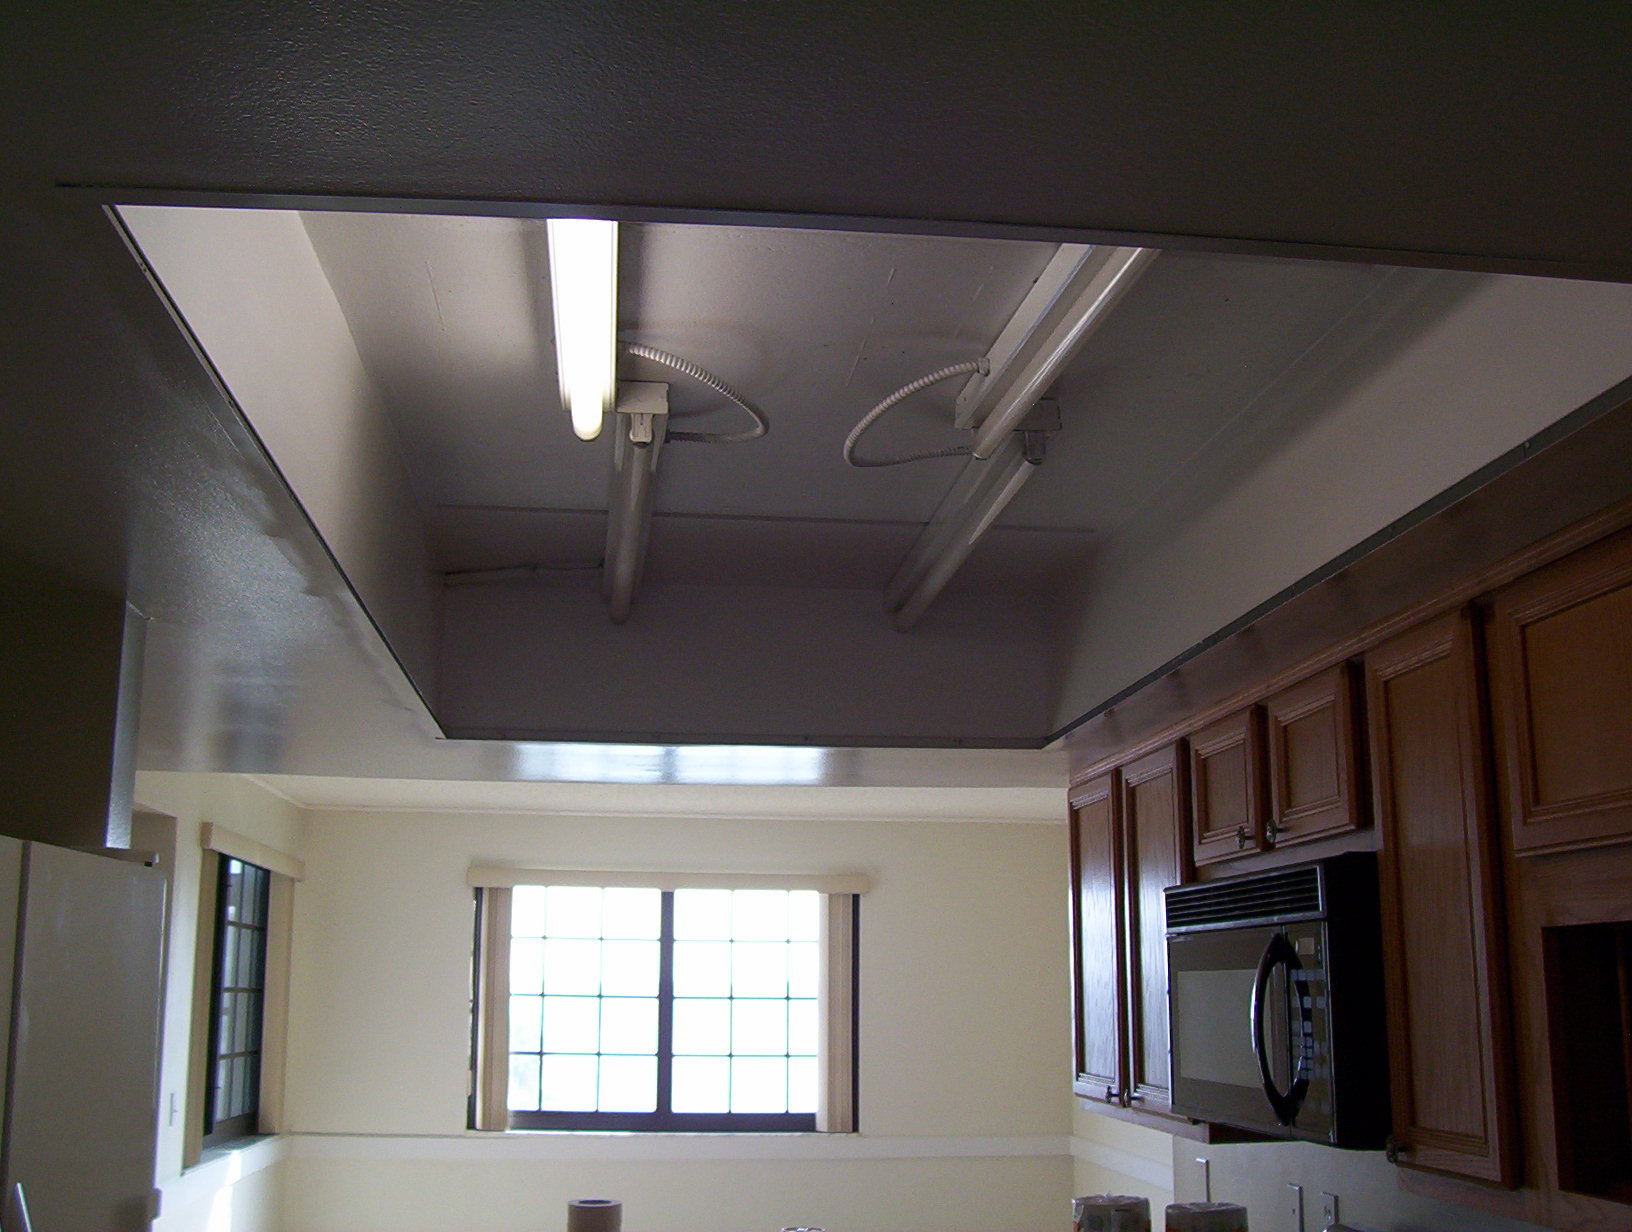 kitchen ceiling lighting soap dispenser what to do with my old drop